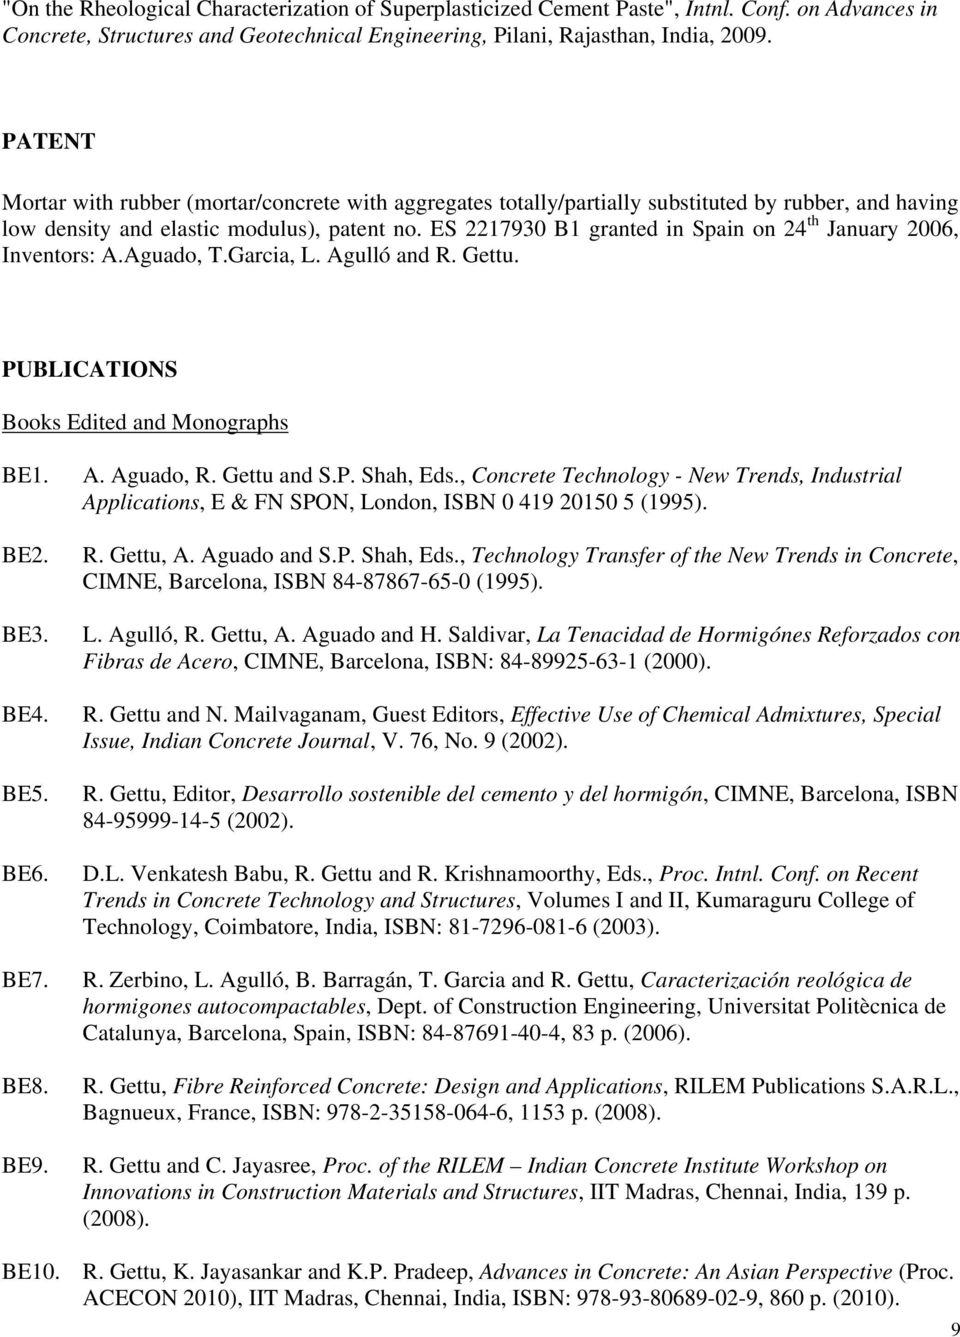 ES 2217930 B1 granted in Spain on 24 th January 2006, Inventors: A.Aguado, T.Garcia, L. Agulló and R. Gettu. PUBLICATIONS Books Edited and Monographs BE1. BE2. BE3. BE4. BE5. BE6. BE7. BE8. BE9. A. Aguado, R.